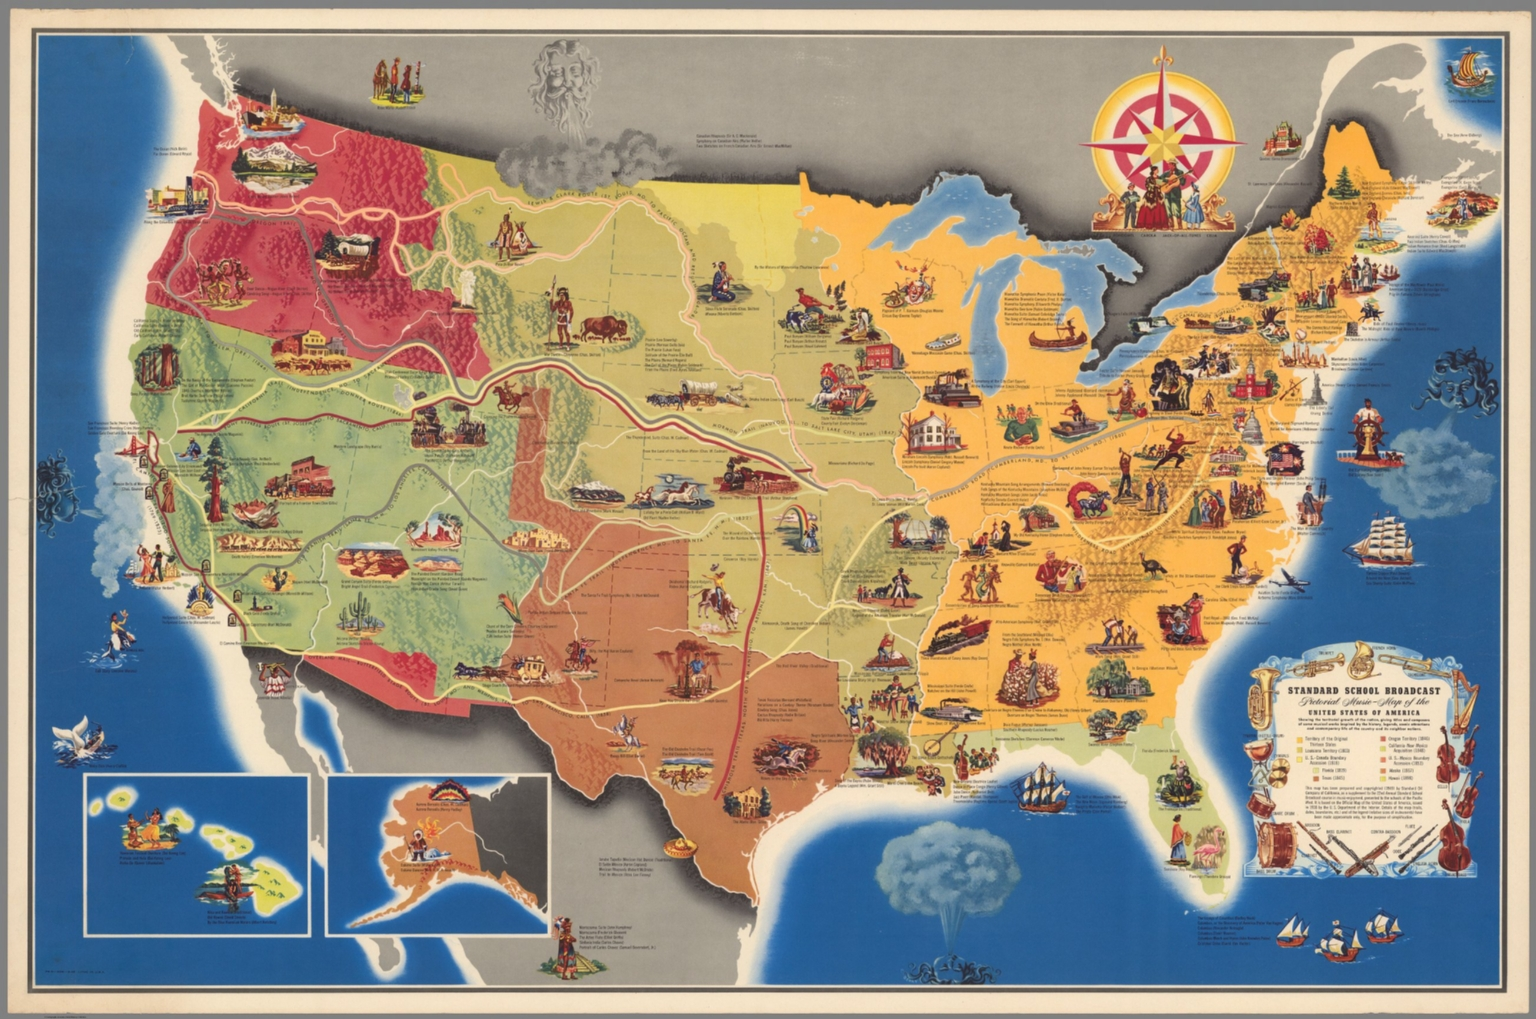 Standard School Broadcast Pictorial Music Map Of The United